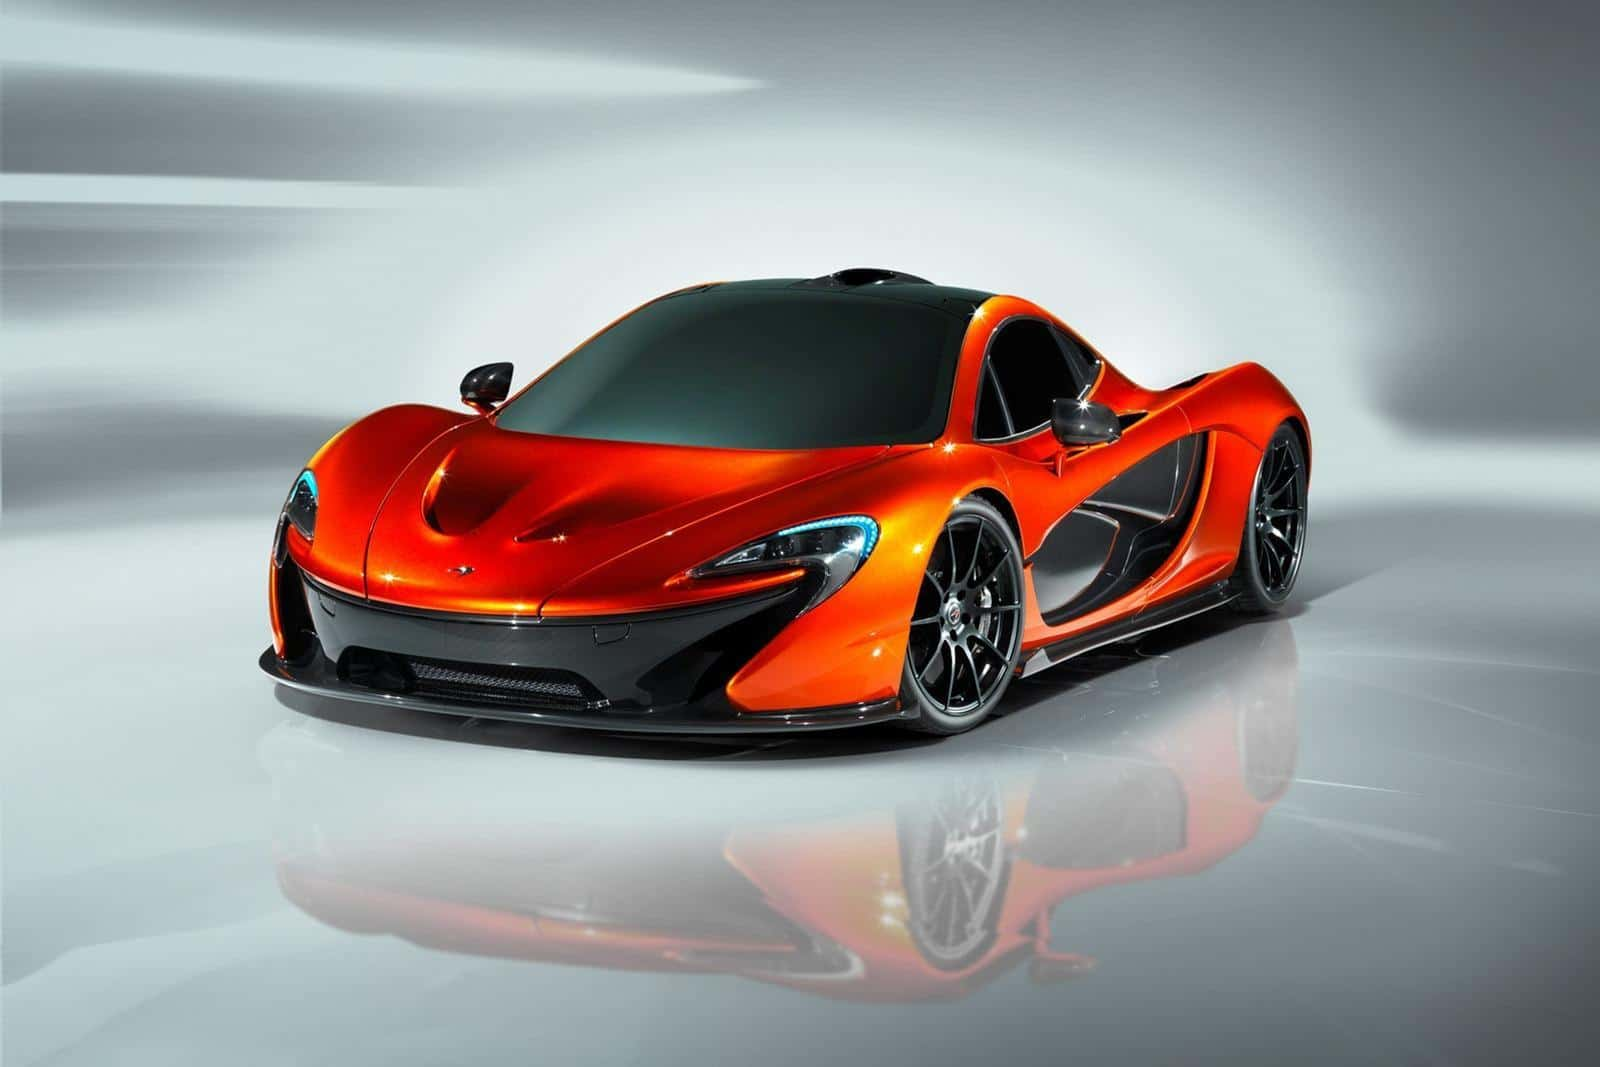 Mclaren P1 Cost >> The Mclaren P1 Is Limited To 500 Units Will Cost Around 1 2m